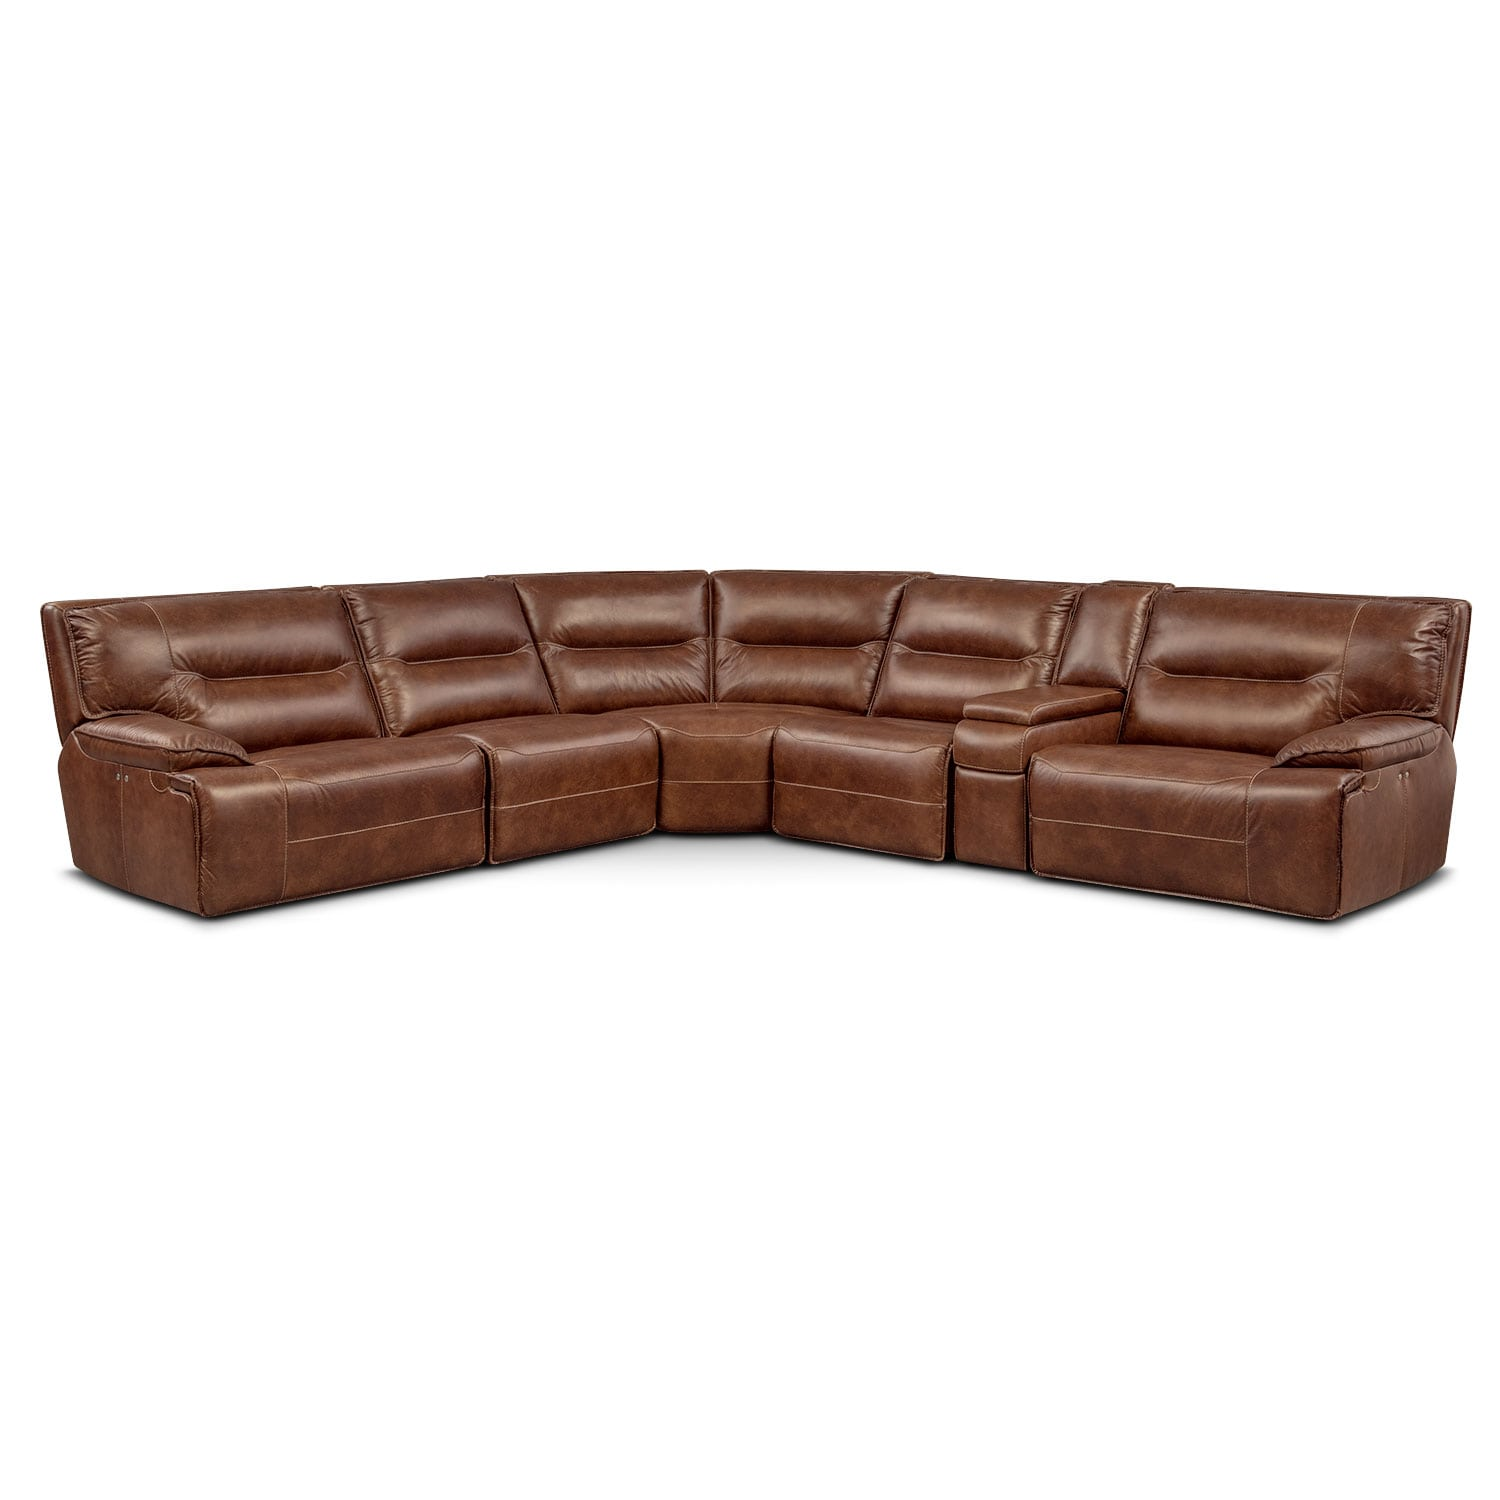 Living Room Furniture - Glenmont Brown 6 Pc. Power Reclining Sectional w/ 2 Power Recliners and Console